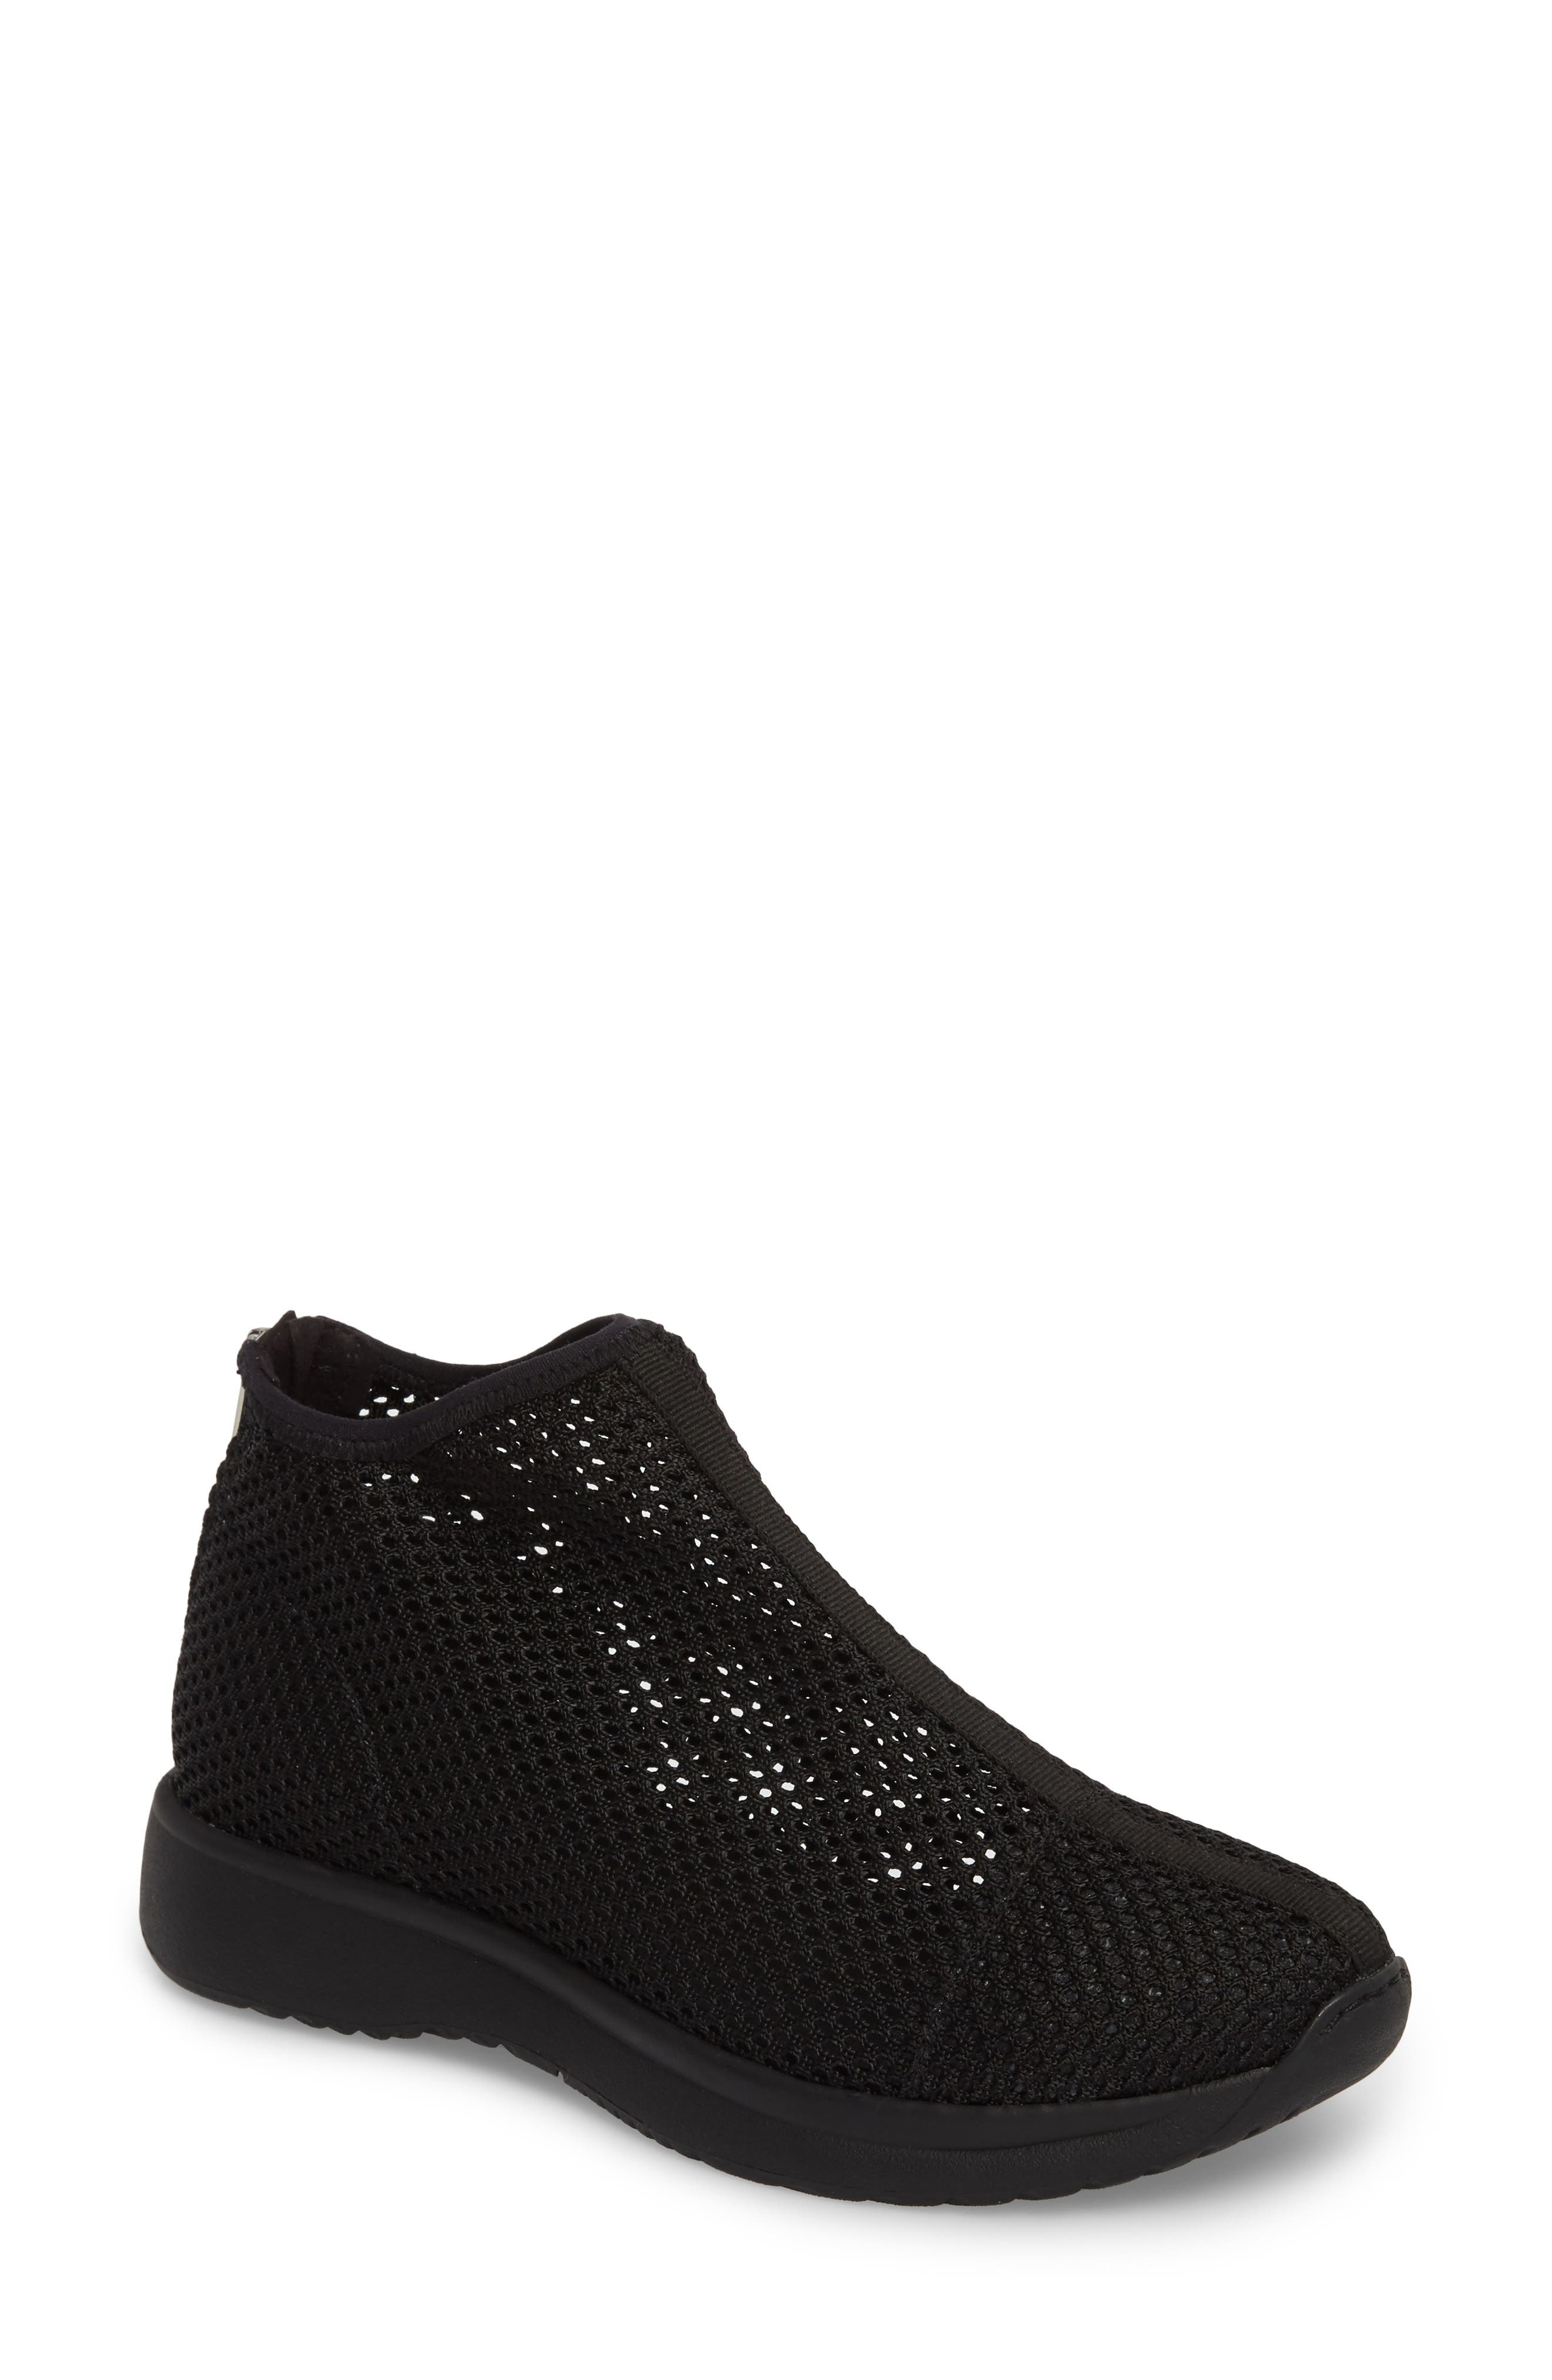 Cintia Sneaker,                             Main thumbnail 1, color,                             Black Fabric